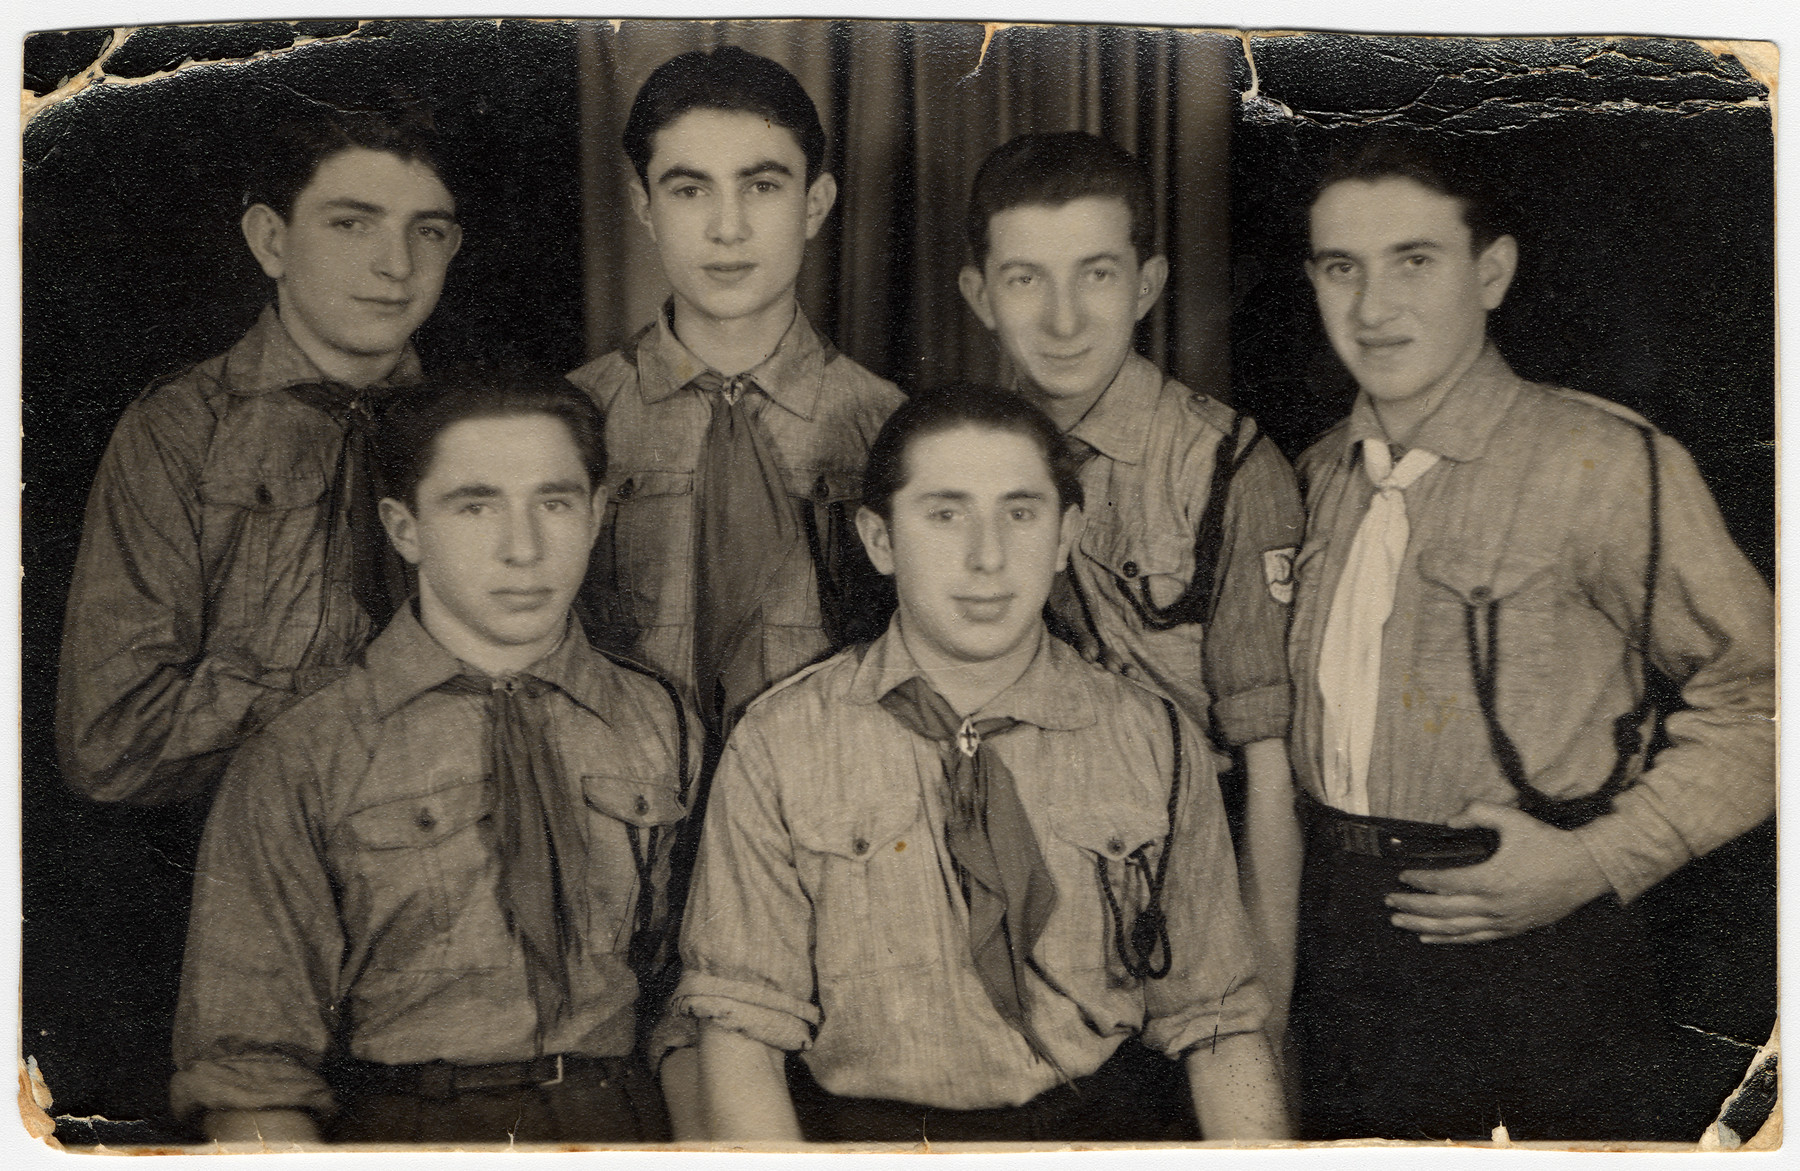 Group portrait of members of the Gordonia Zionist Youth movement in Bielsko Biala after the war.   Pictured standing, from the left are: the donor, Mishka Brzostek, David Szifman and Zwi Ickowicz.  Sitting are: Natan Reich and Eliezer Slepski (Ben Meir).